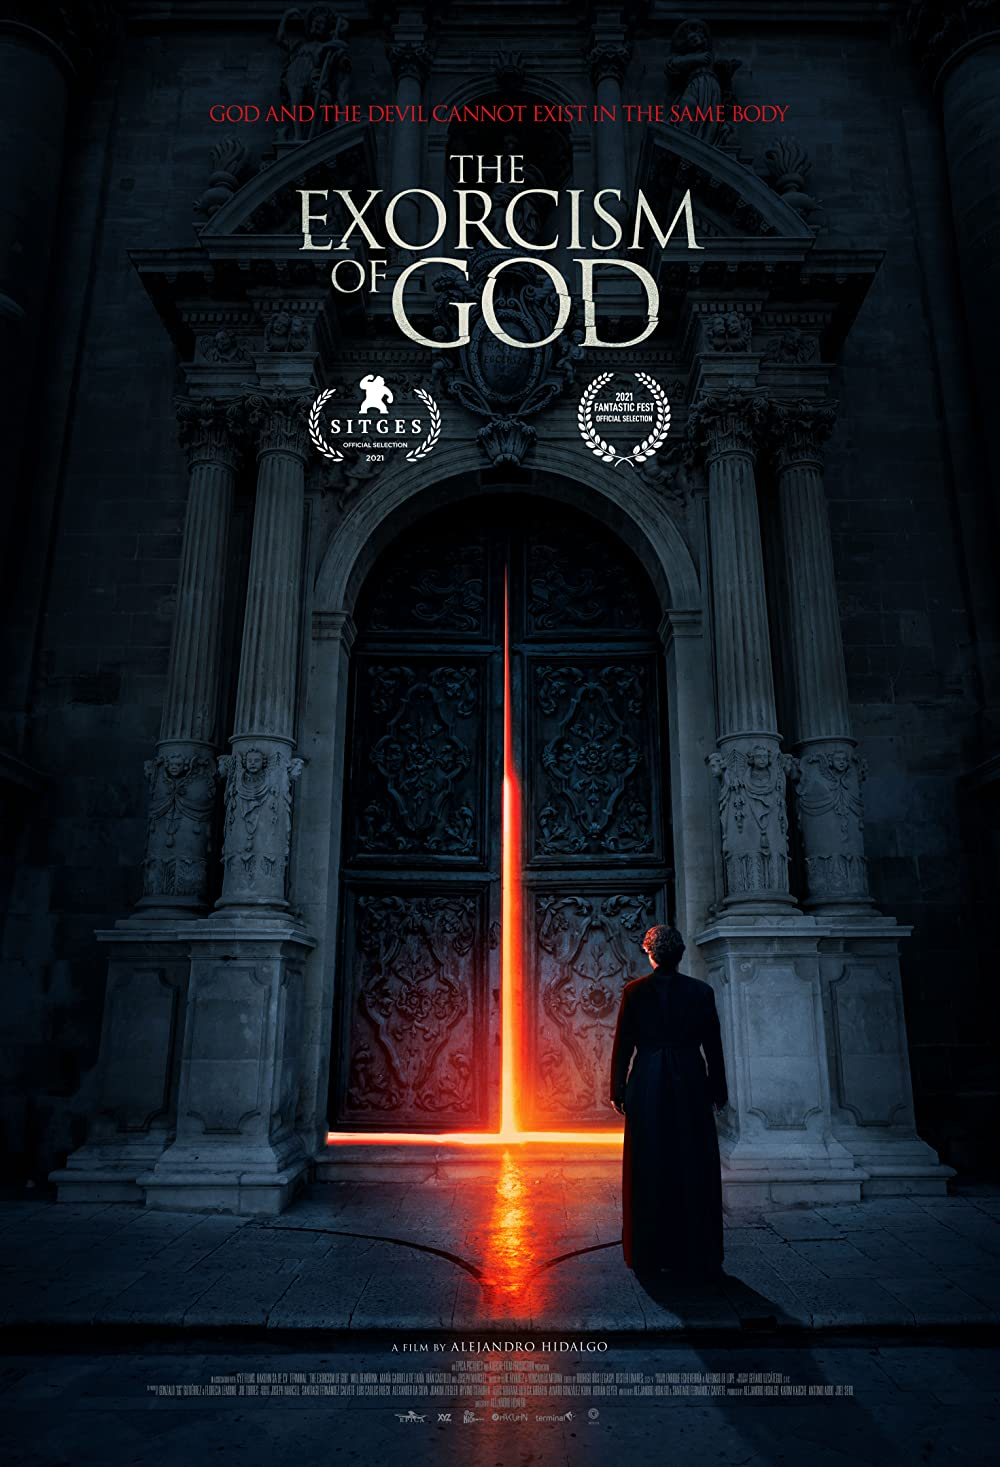 The Exorcism of God Film Review